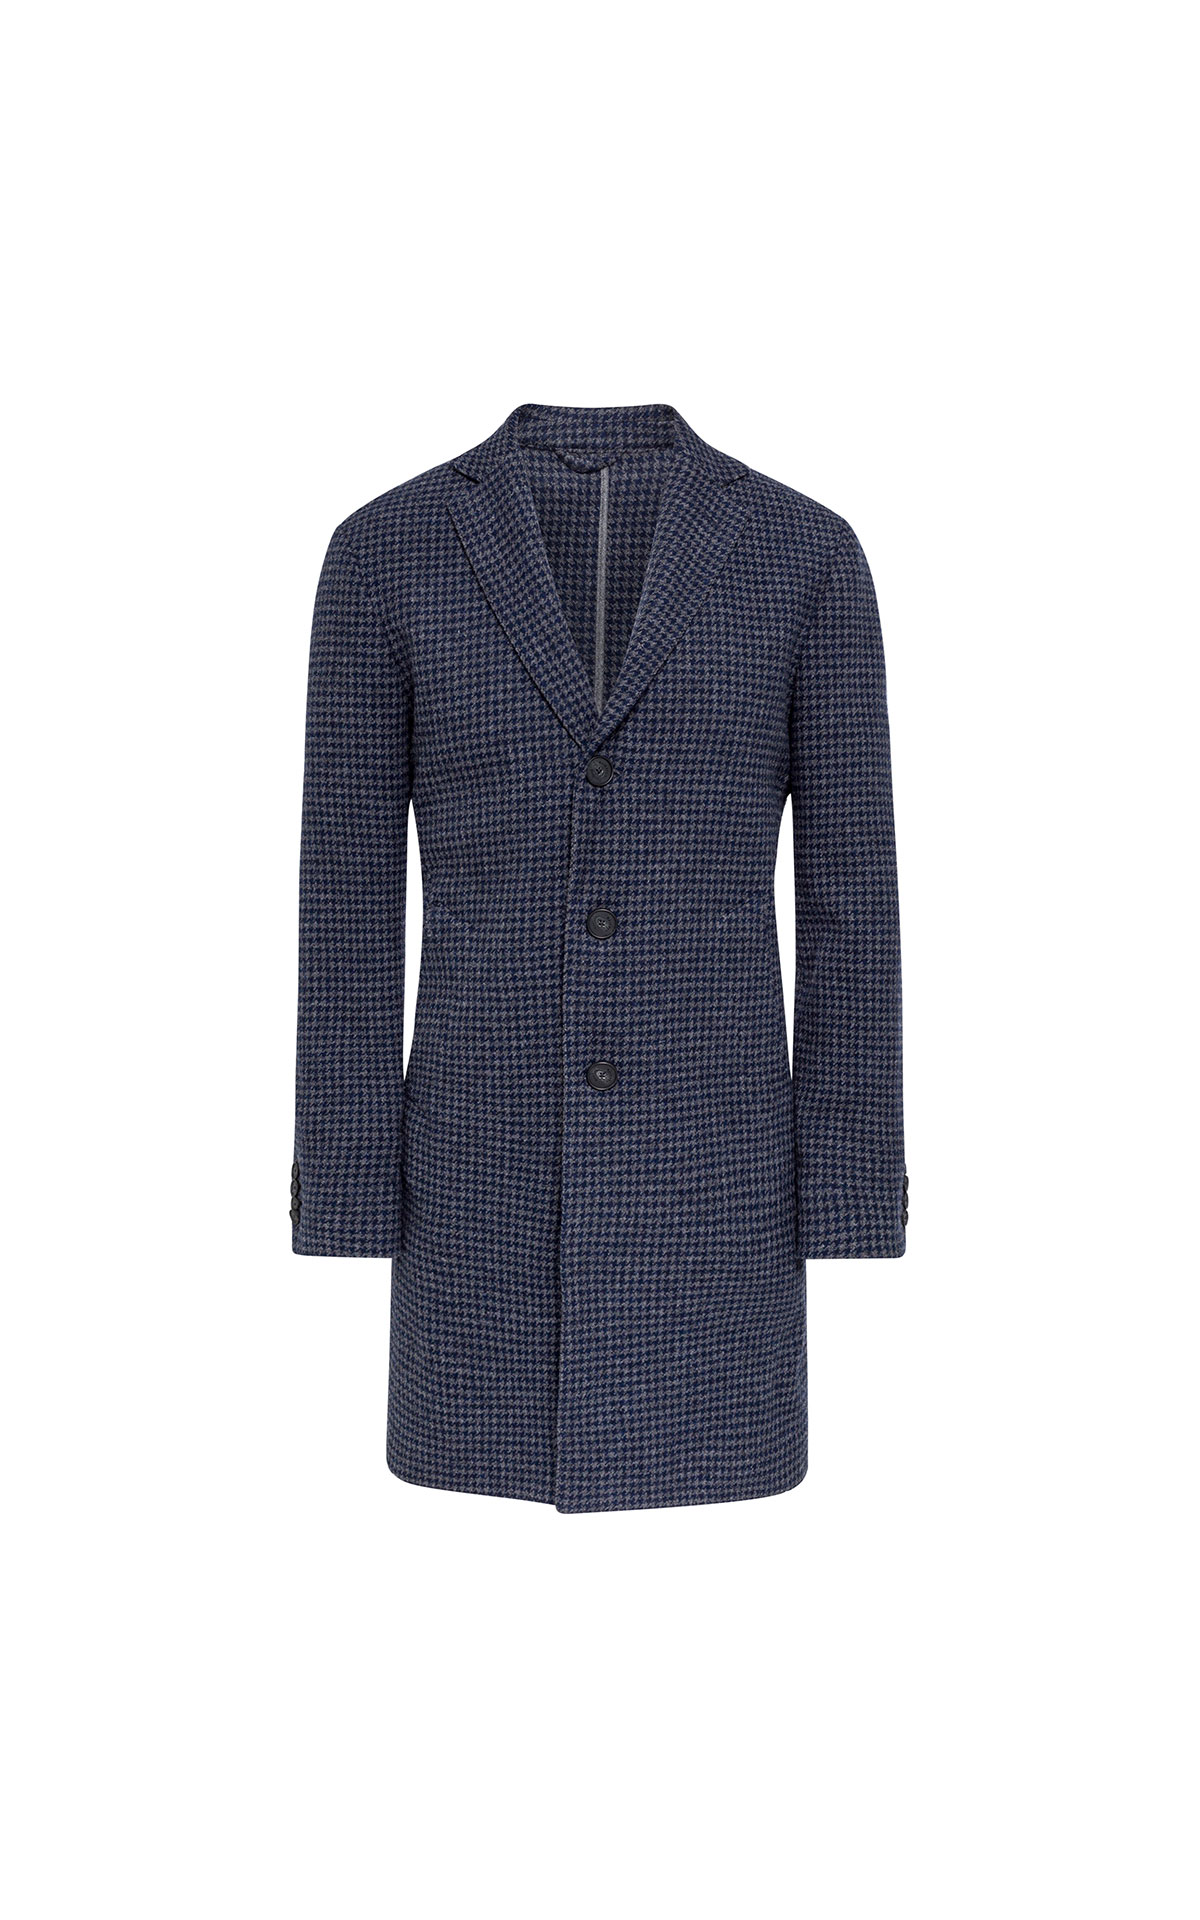 Hackett Unstructured houndstooth coat from Bicester Village